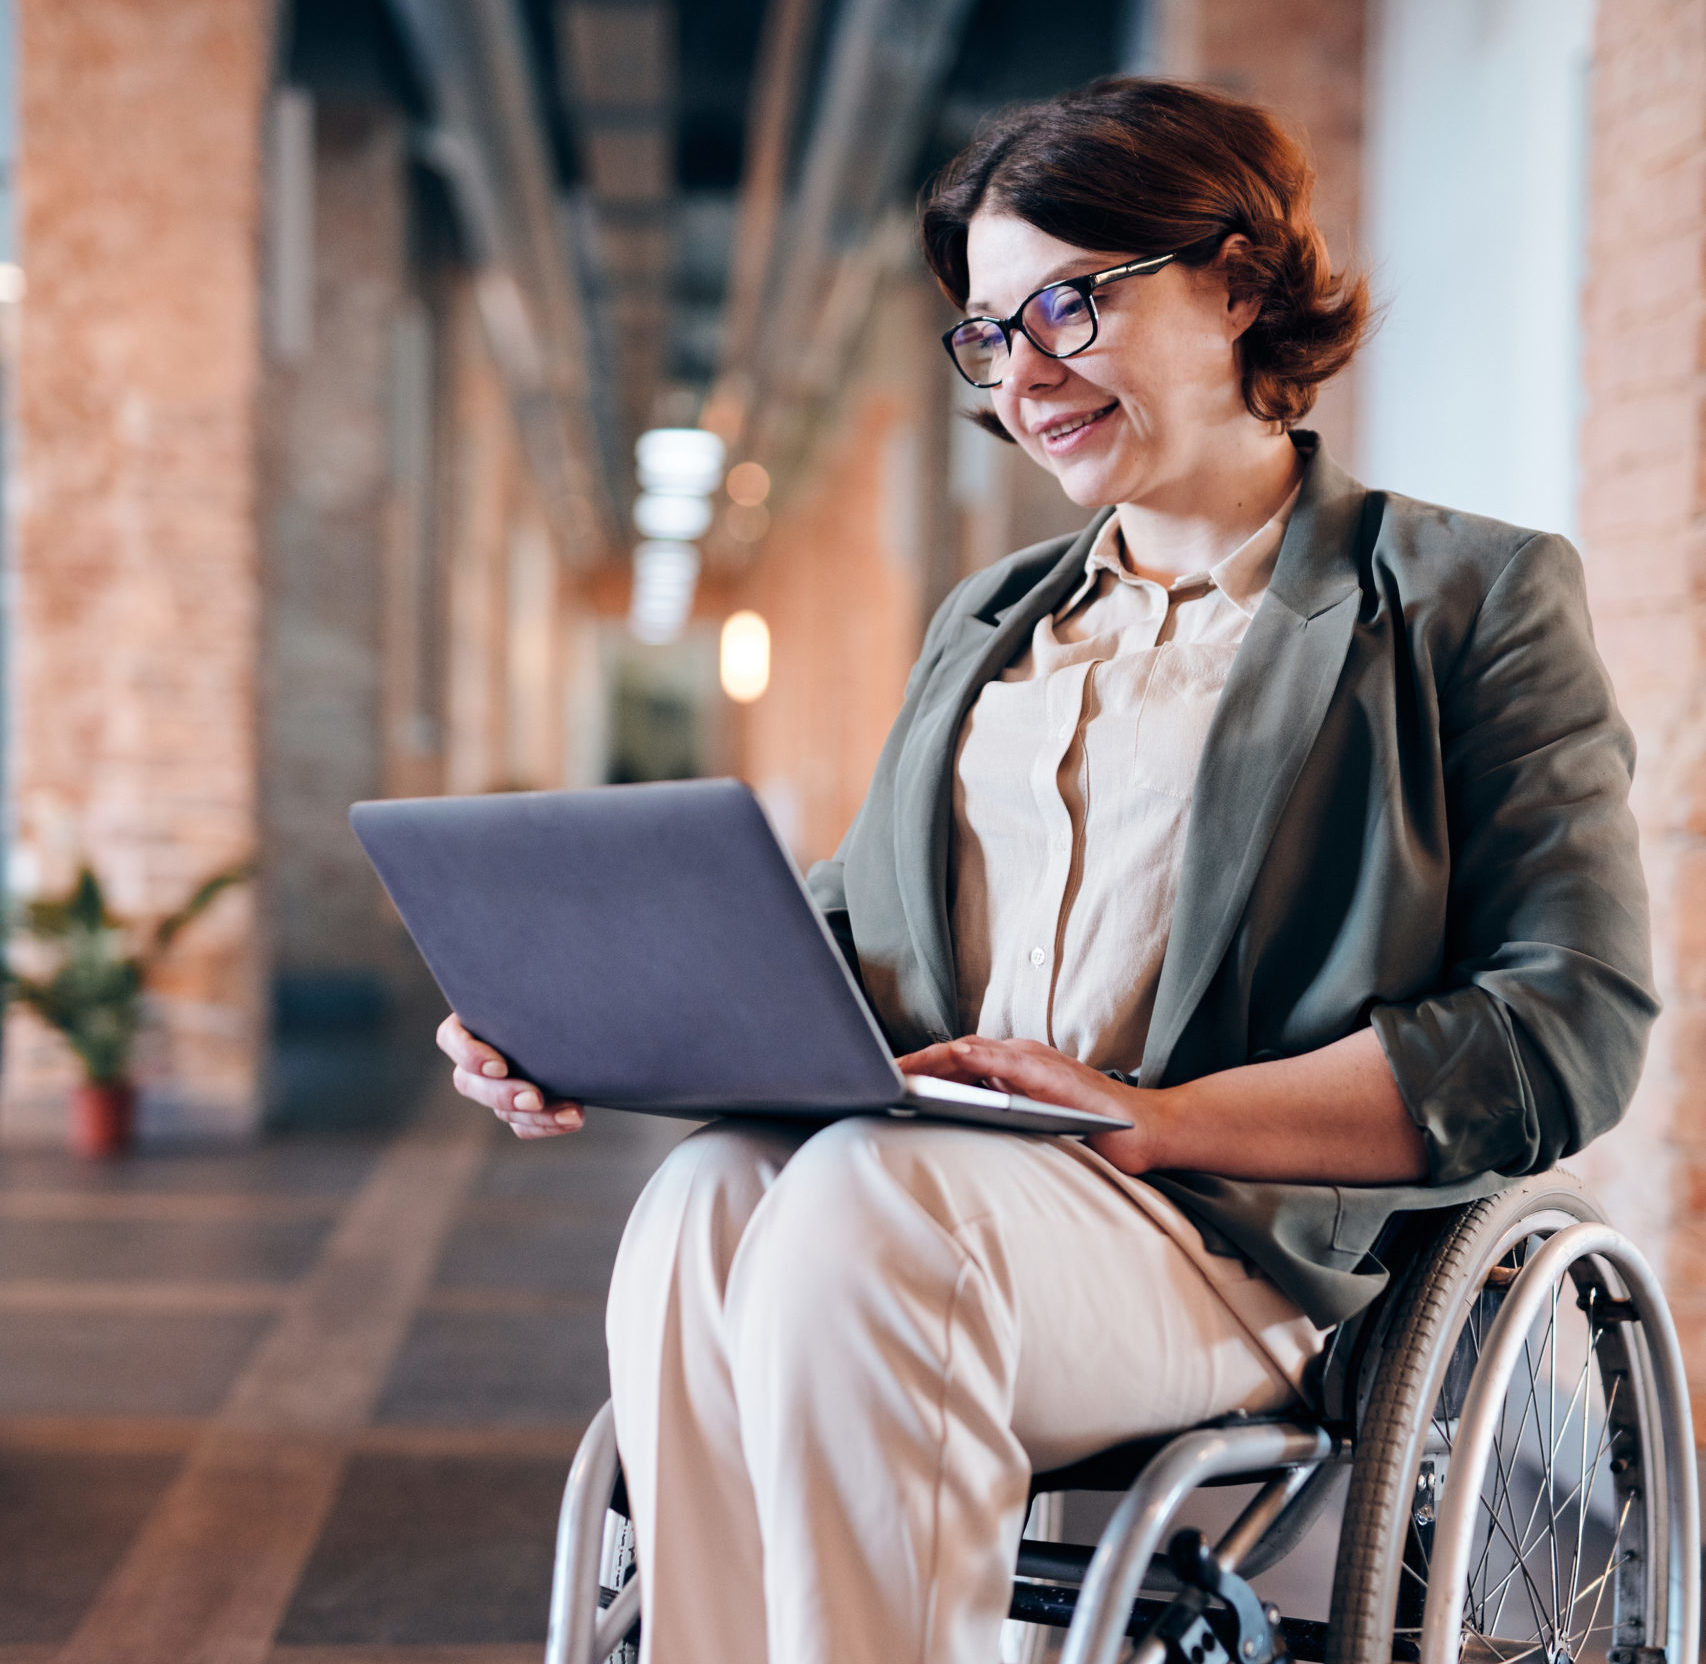 photo-of-woman-sitting-on-wheelchair-while-using-laptop-4064417